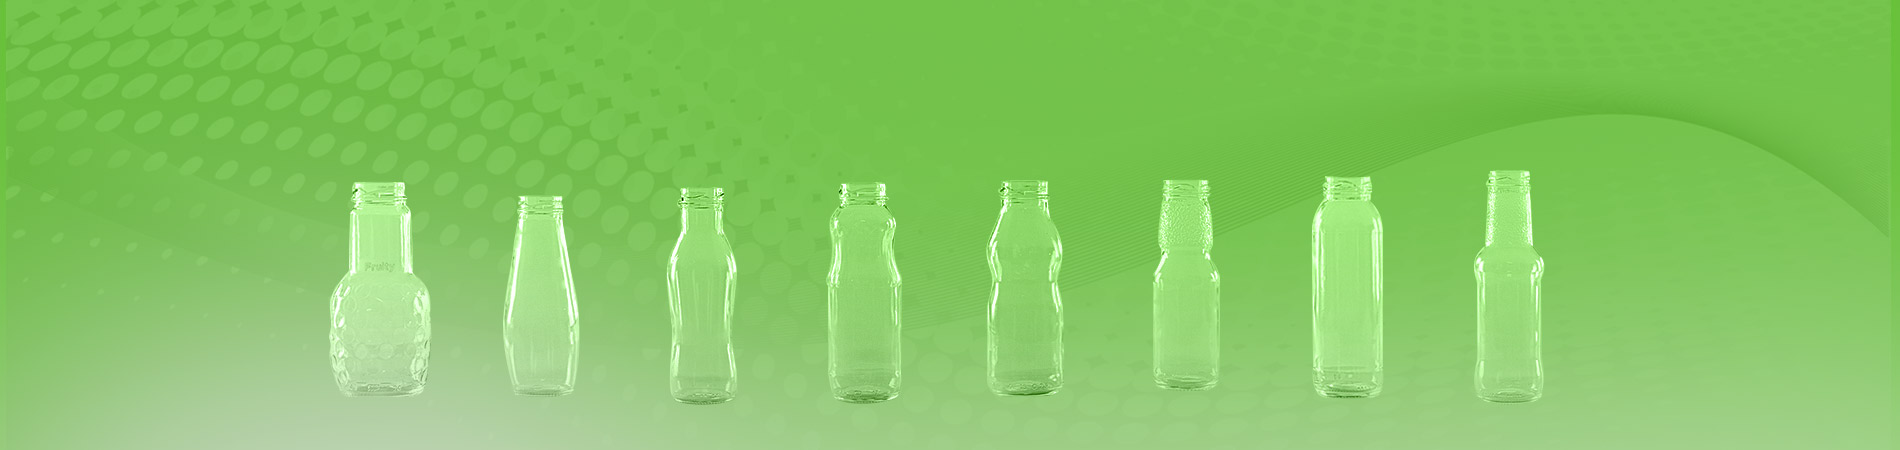 Carbonated Drink Bottles